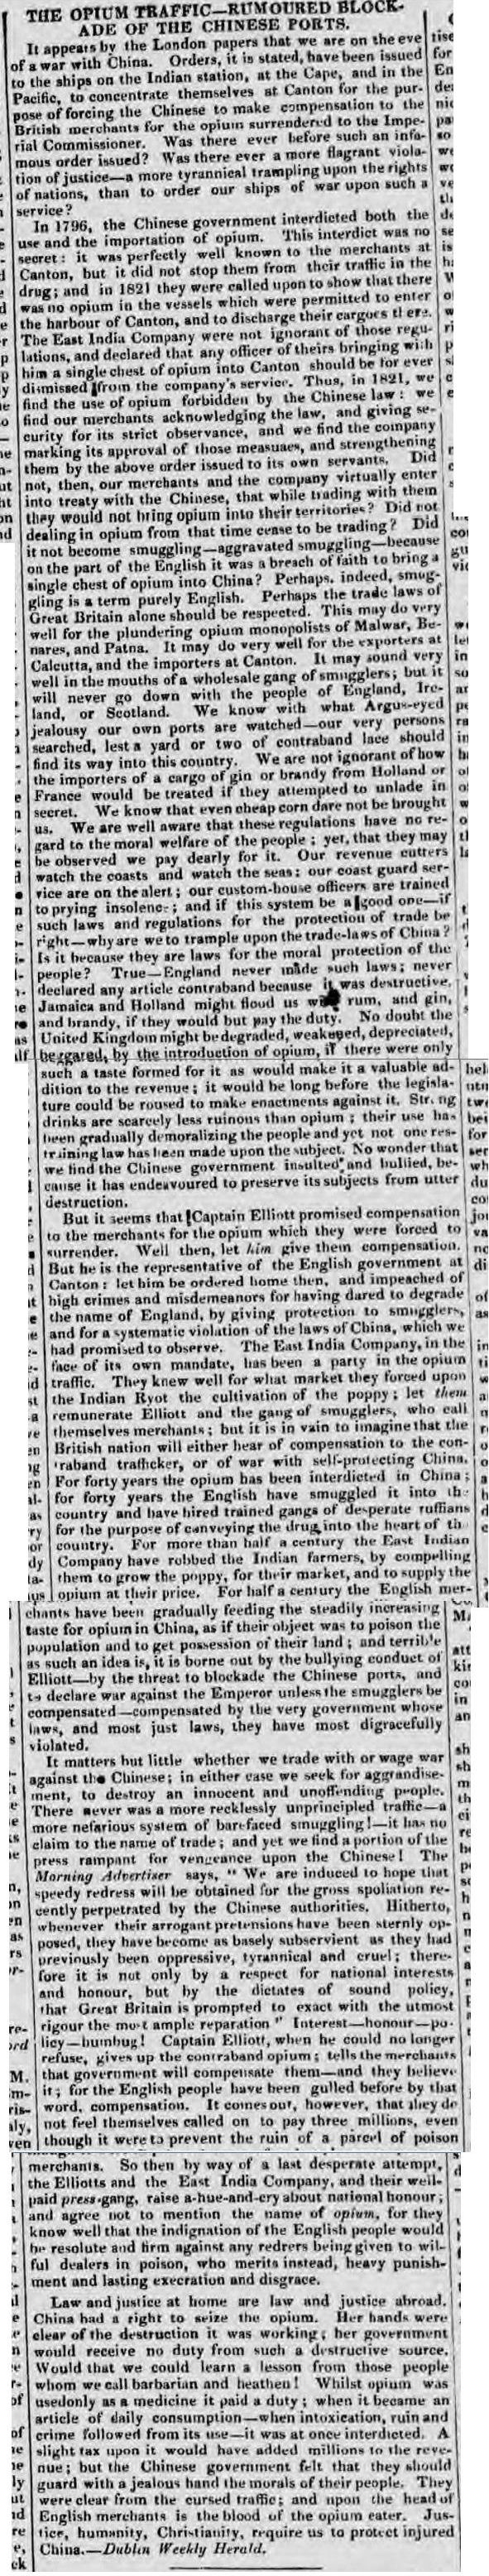 newspaper report about the opium  war between china and britain